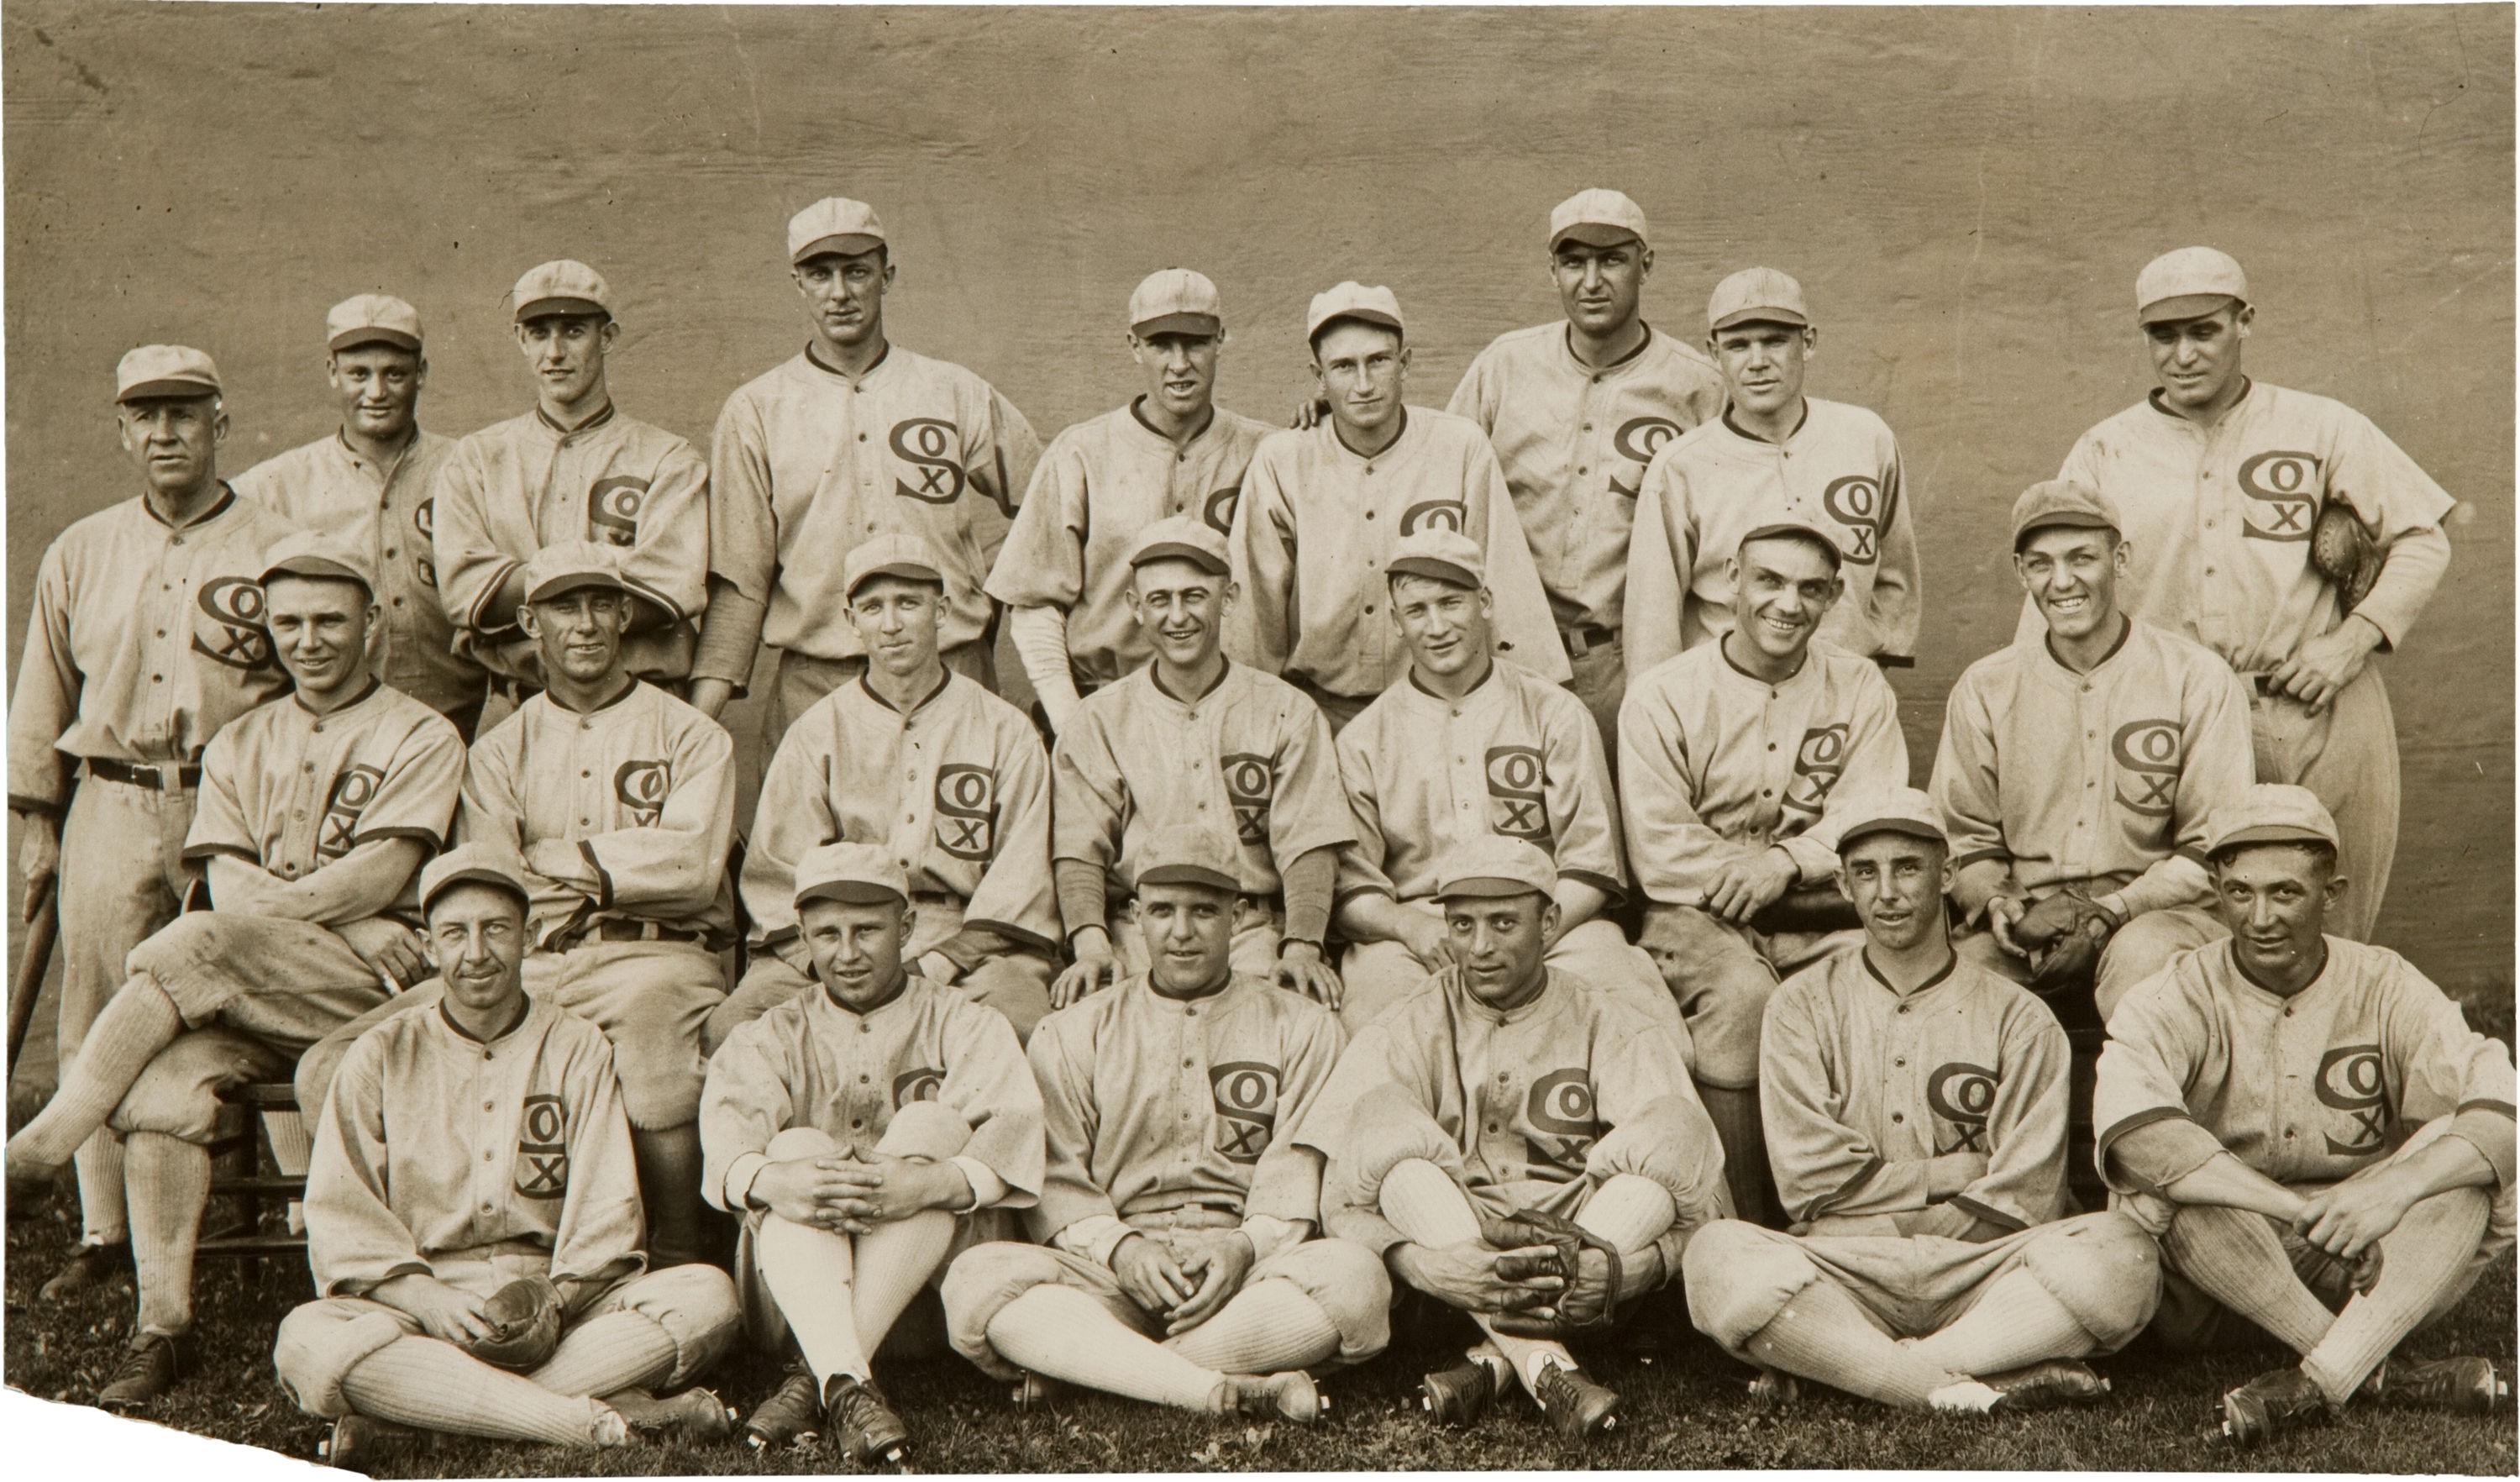 2086db975dc8 Chicago White Sox, 1919; minus Joe Jackson, mysteriously airbrushed out at  top right. Go to story's end to view original.